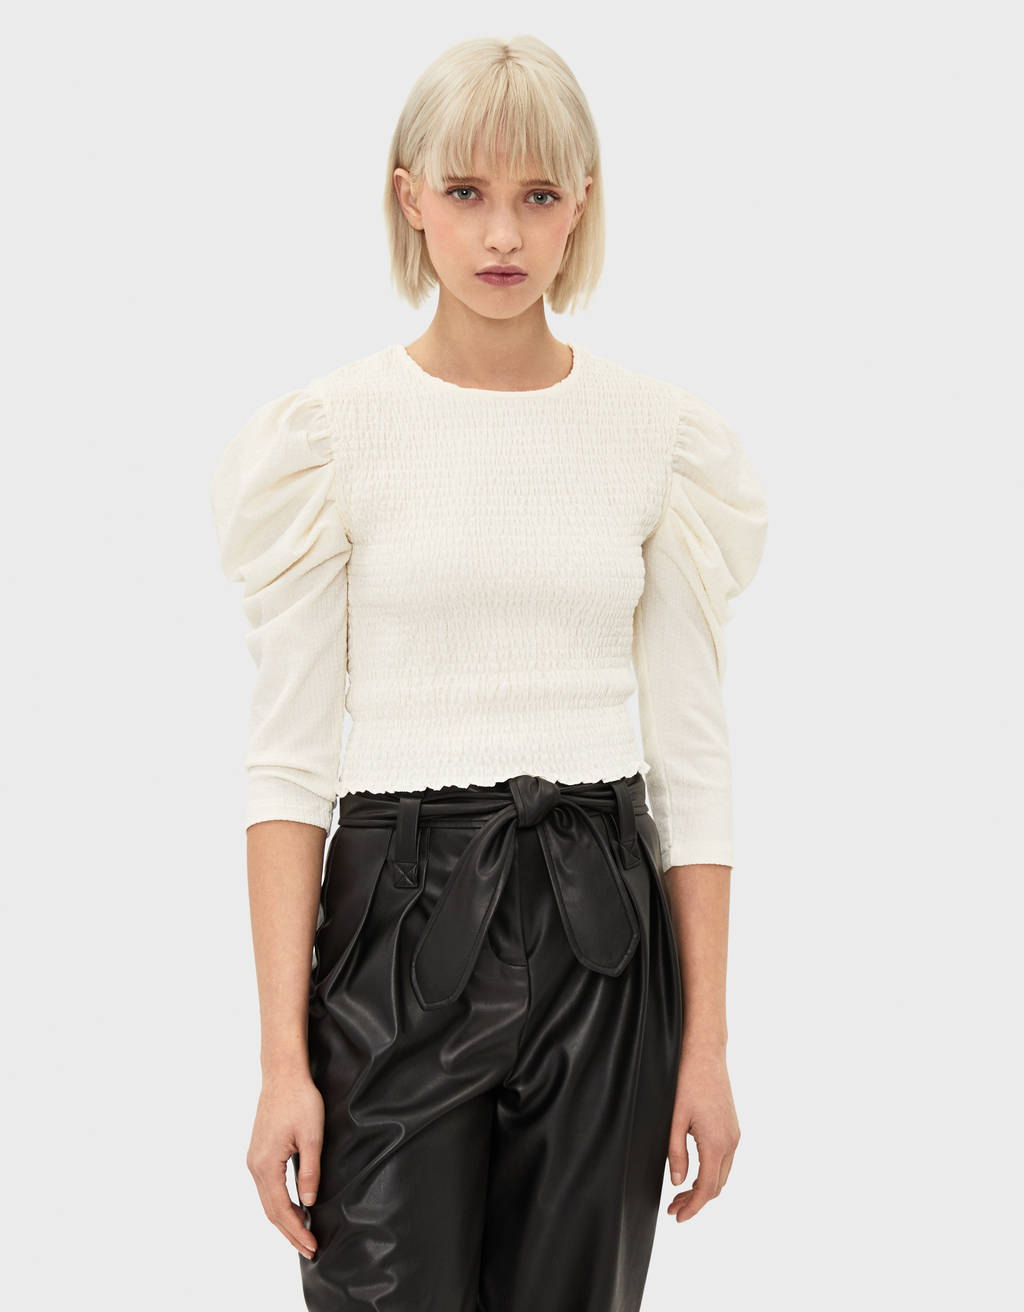 Voluminous blouse with shirred elastic